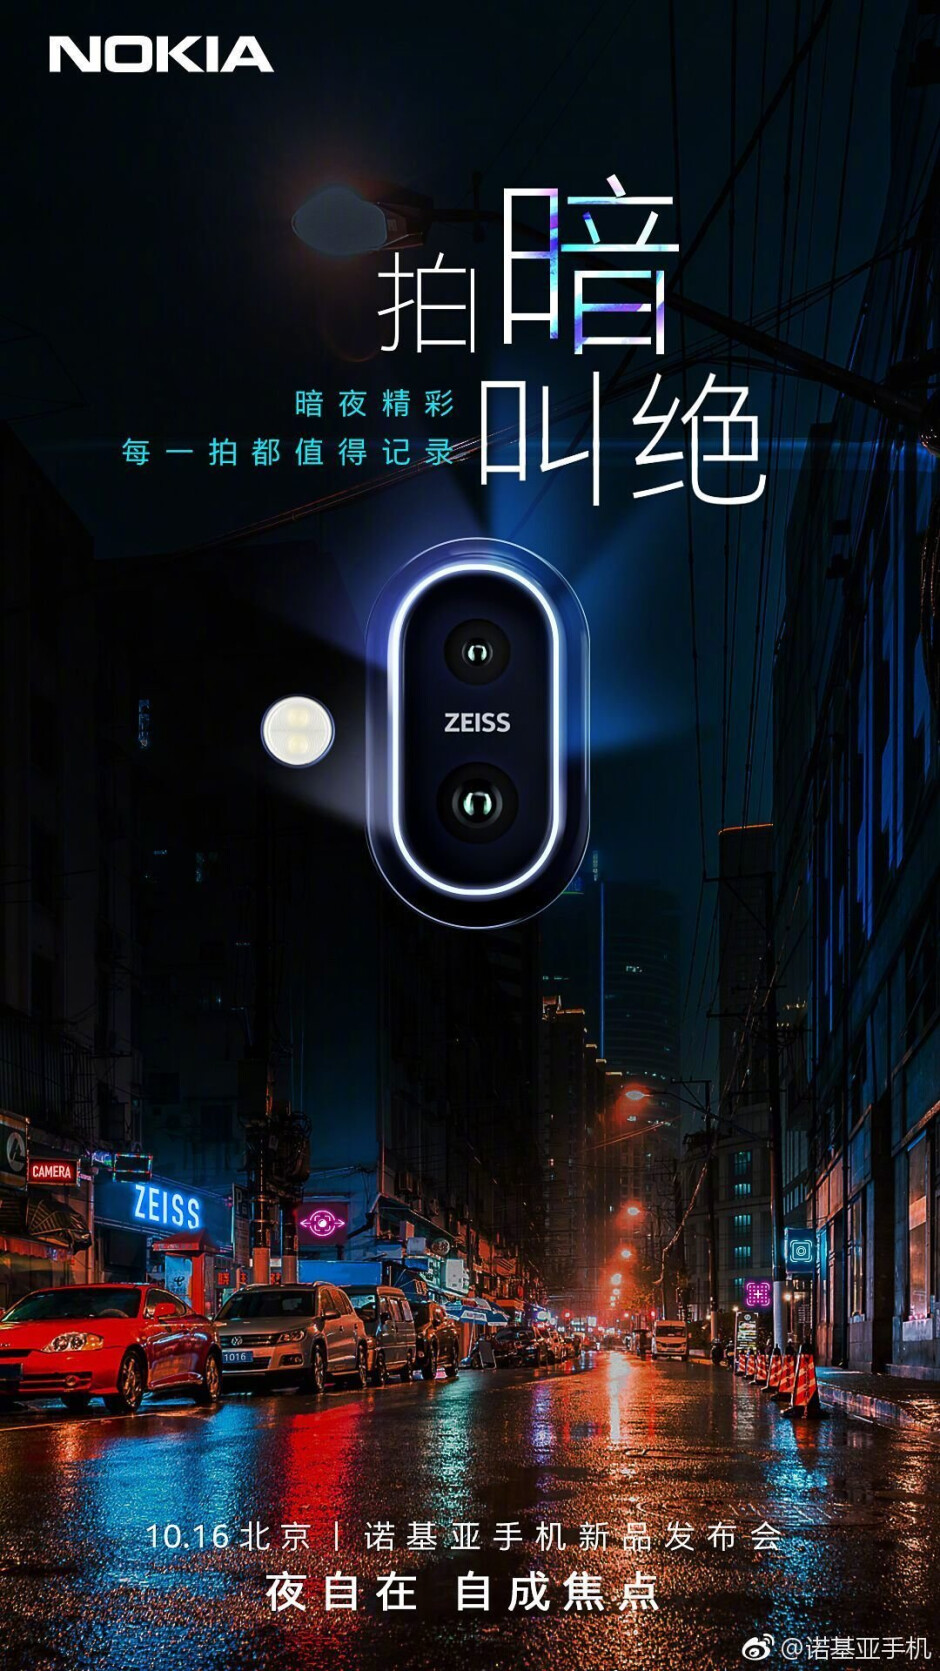 Nokia X7 to be announced on October 16, Zeiss-branded dual camera confirmed